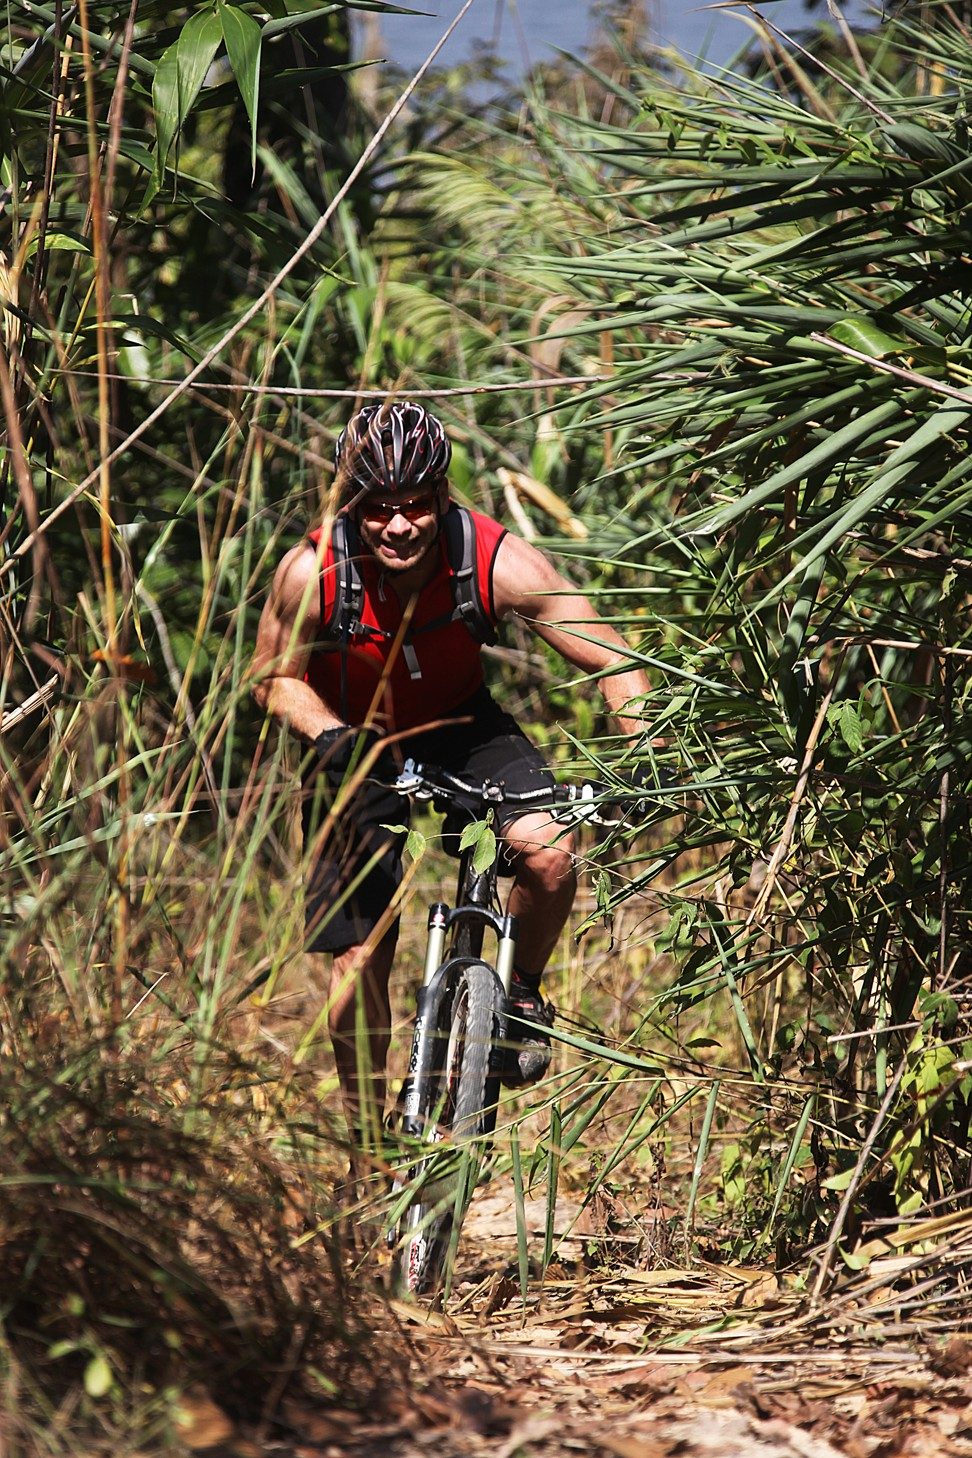 Riding the lowland trails between Huay Tung Tao and the 700 Years Stadium. Photo: Steve Thomas